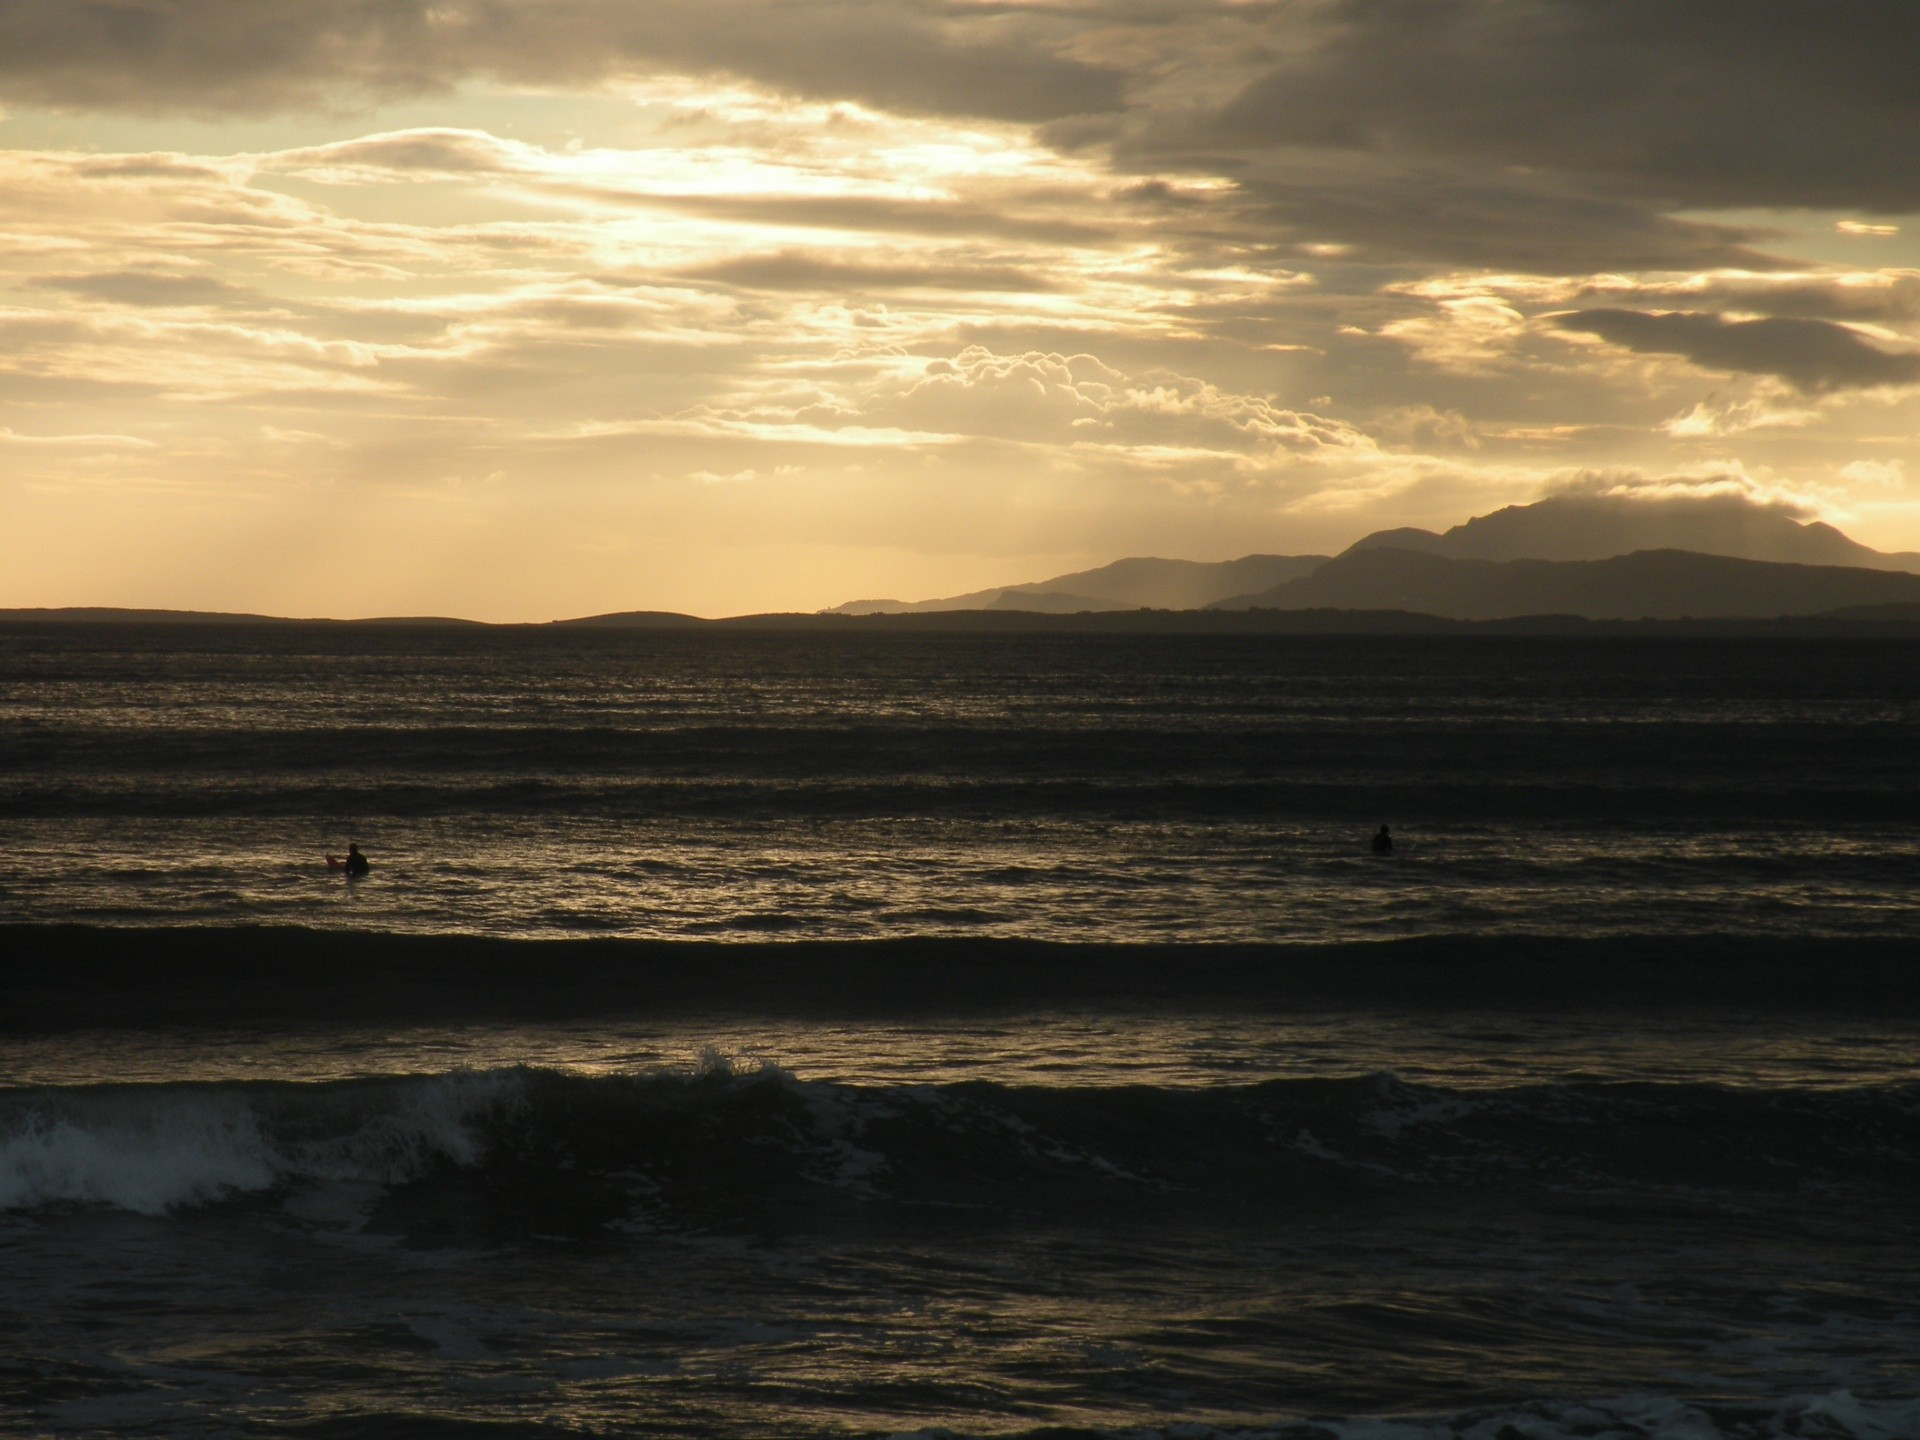 Brian Carey's photo of Rossnowlagh